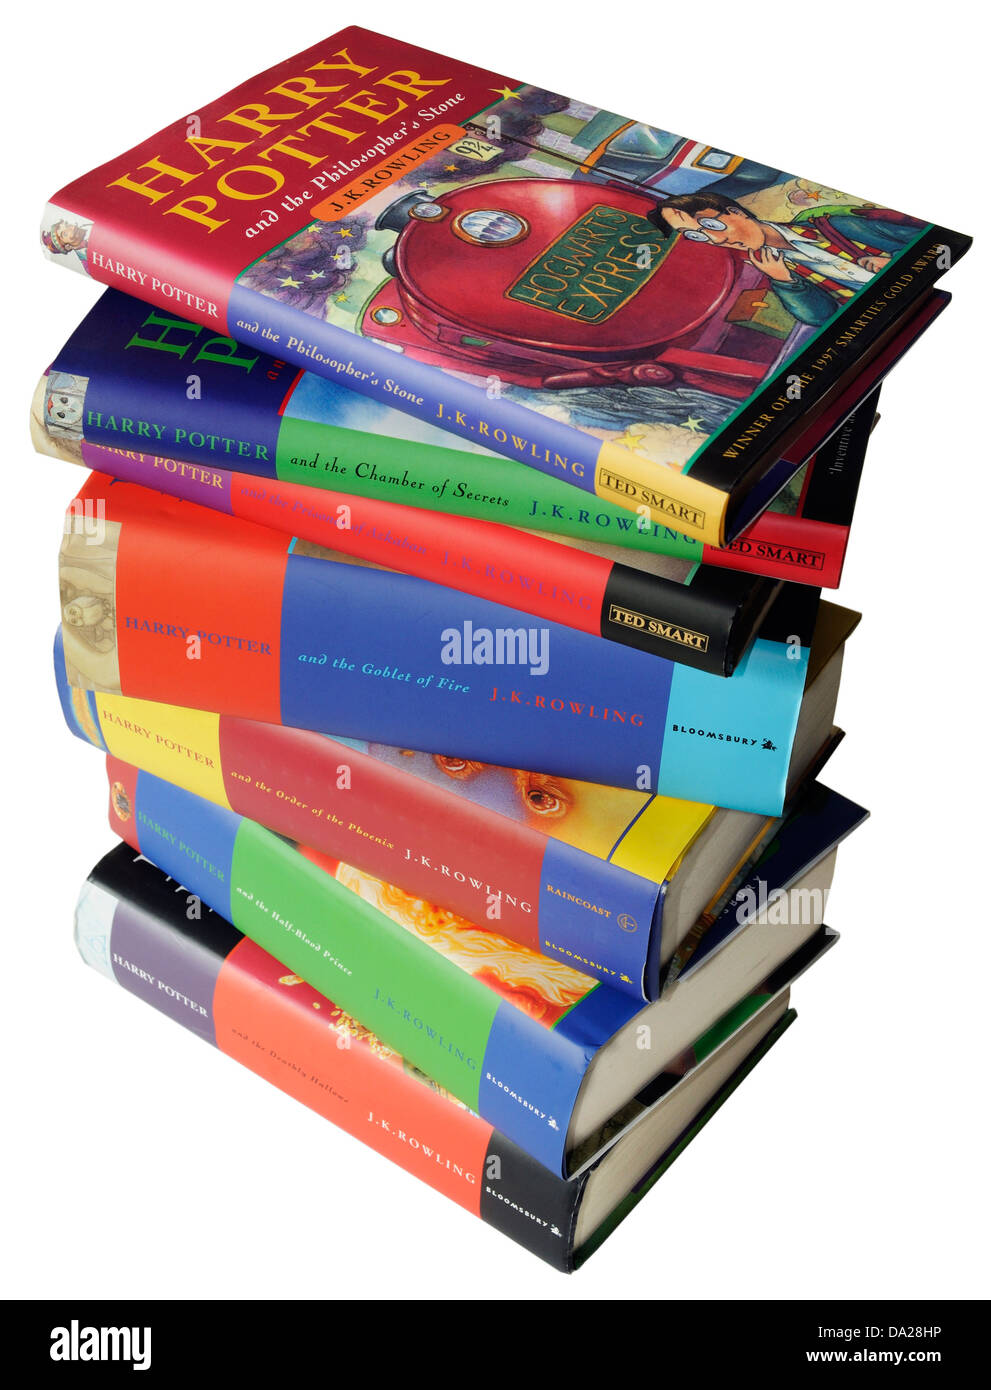 The 7 Harry Potter books - Stock Image